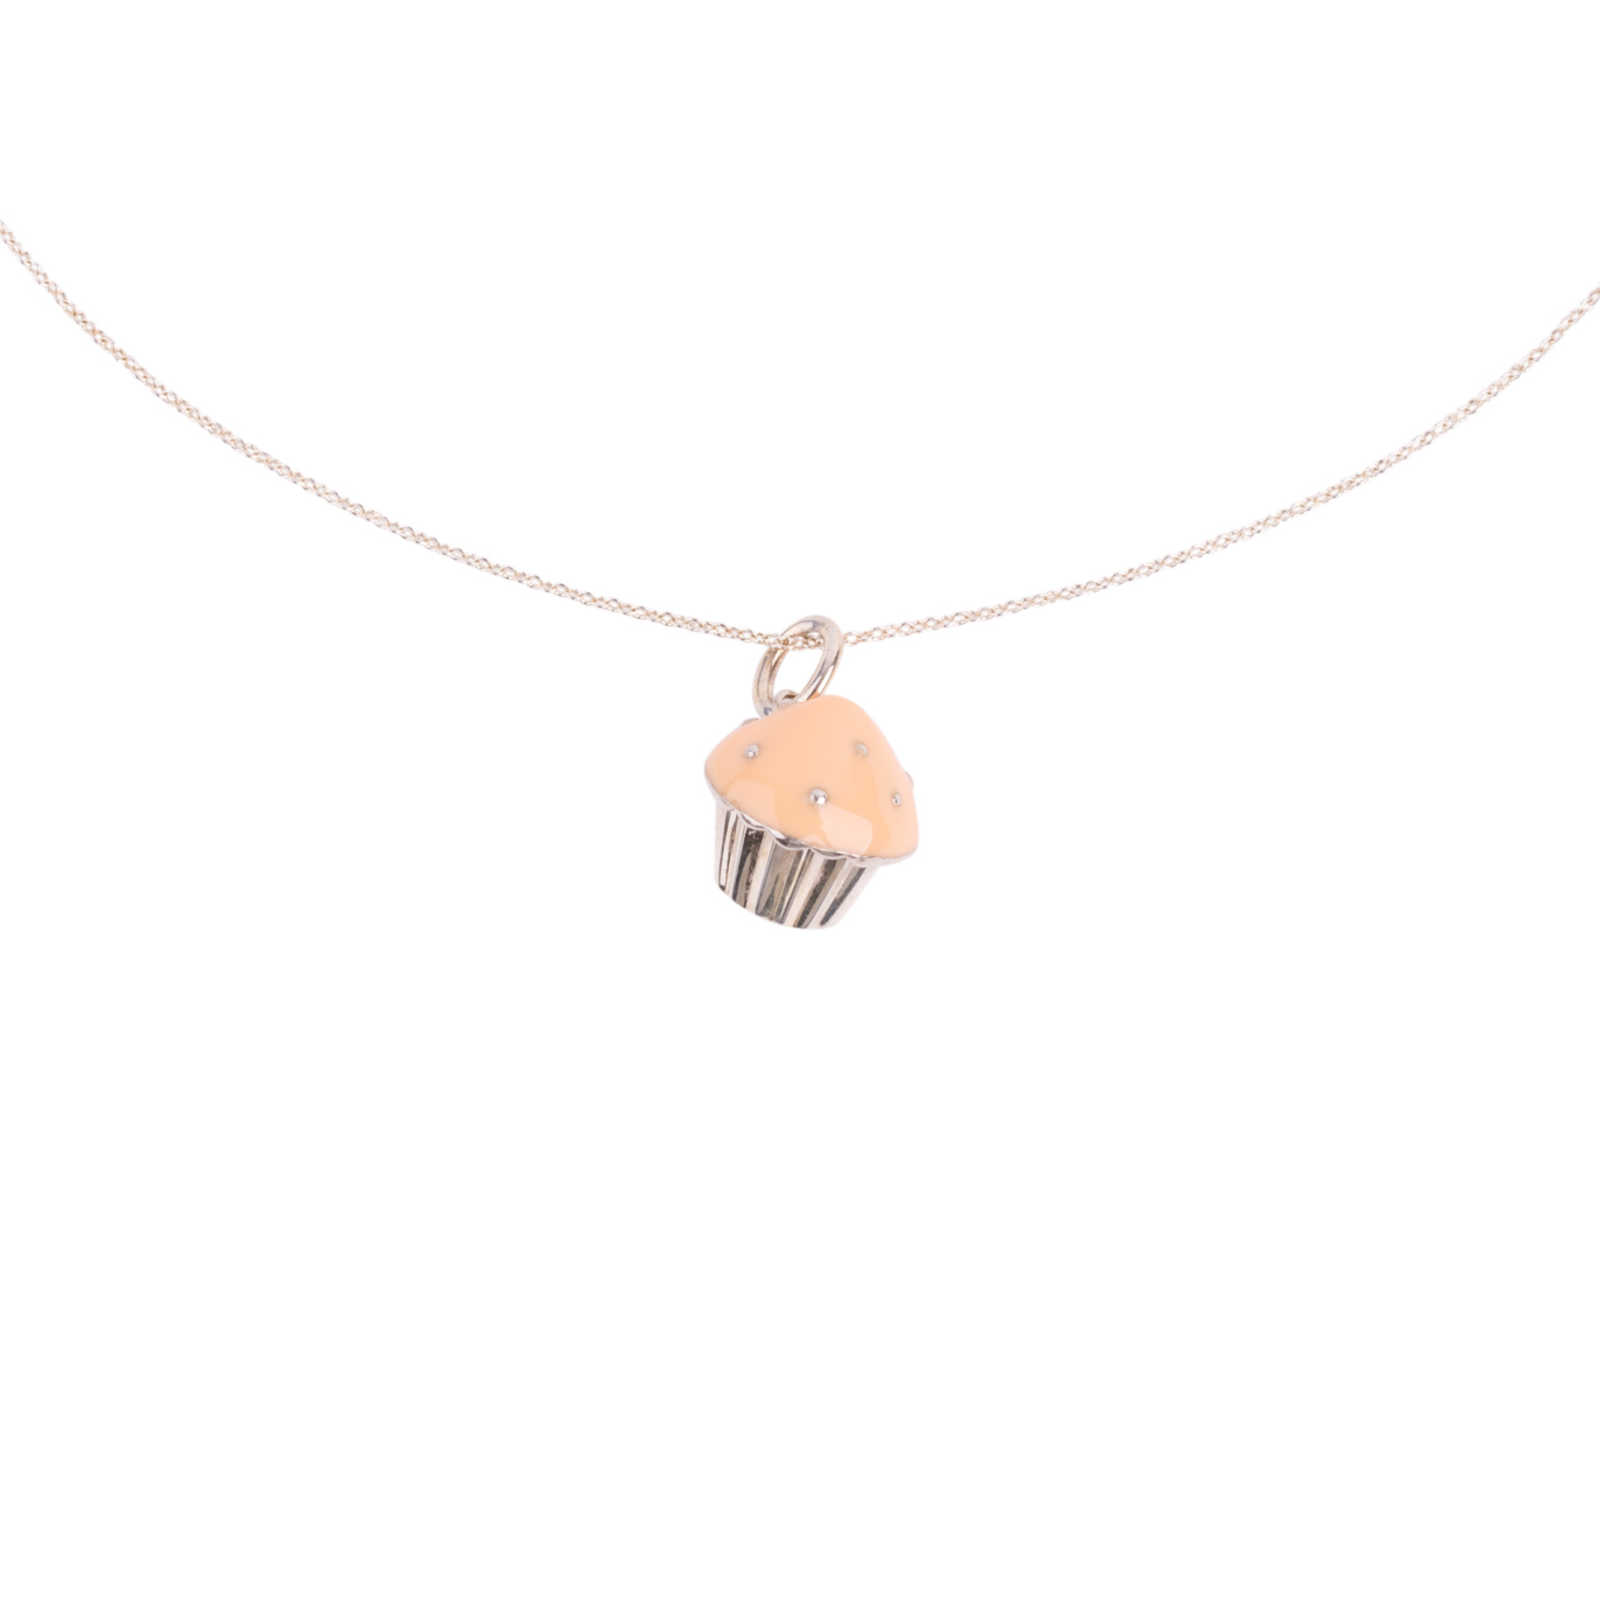 80b6c35d4 Authentic Second Hand Tiffany & Co Cupcake Pendant Necklace (PSS-626-00015)  ...